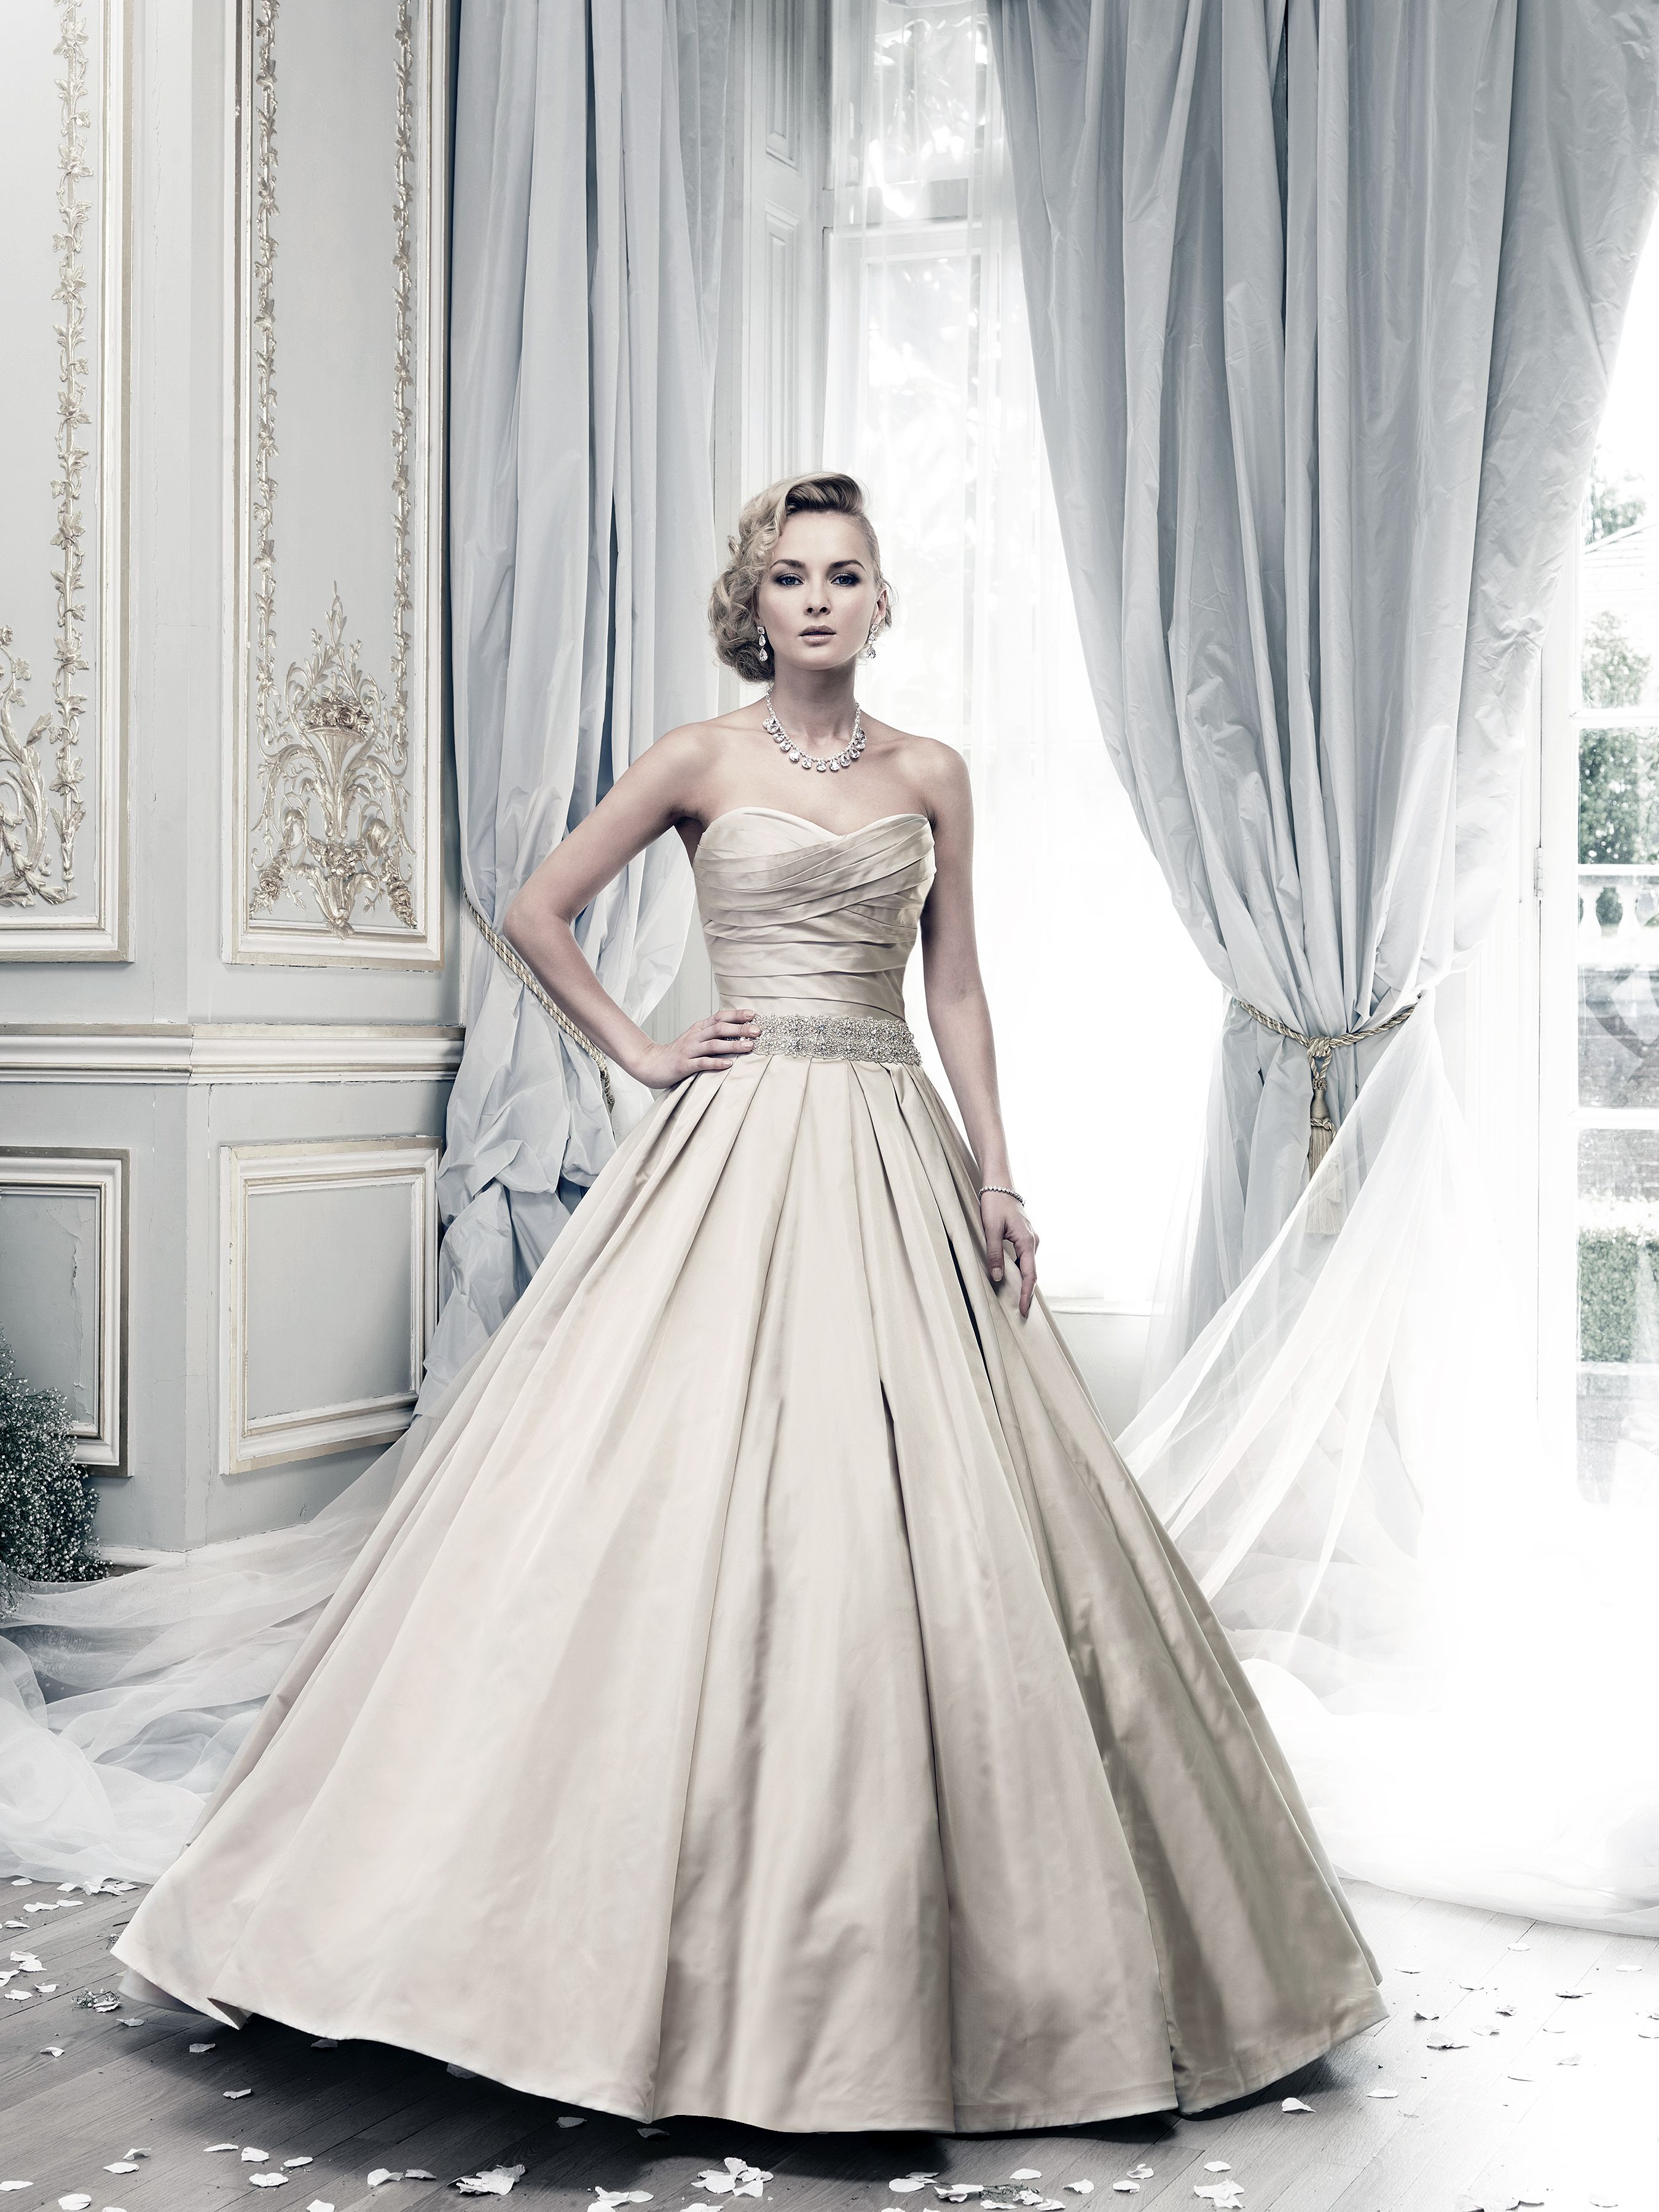 Coloured Wedding Dresses From Top UK Bridal Designers | Colored ...